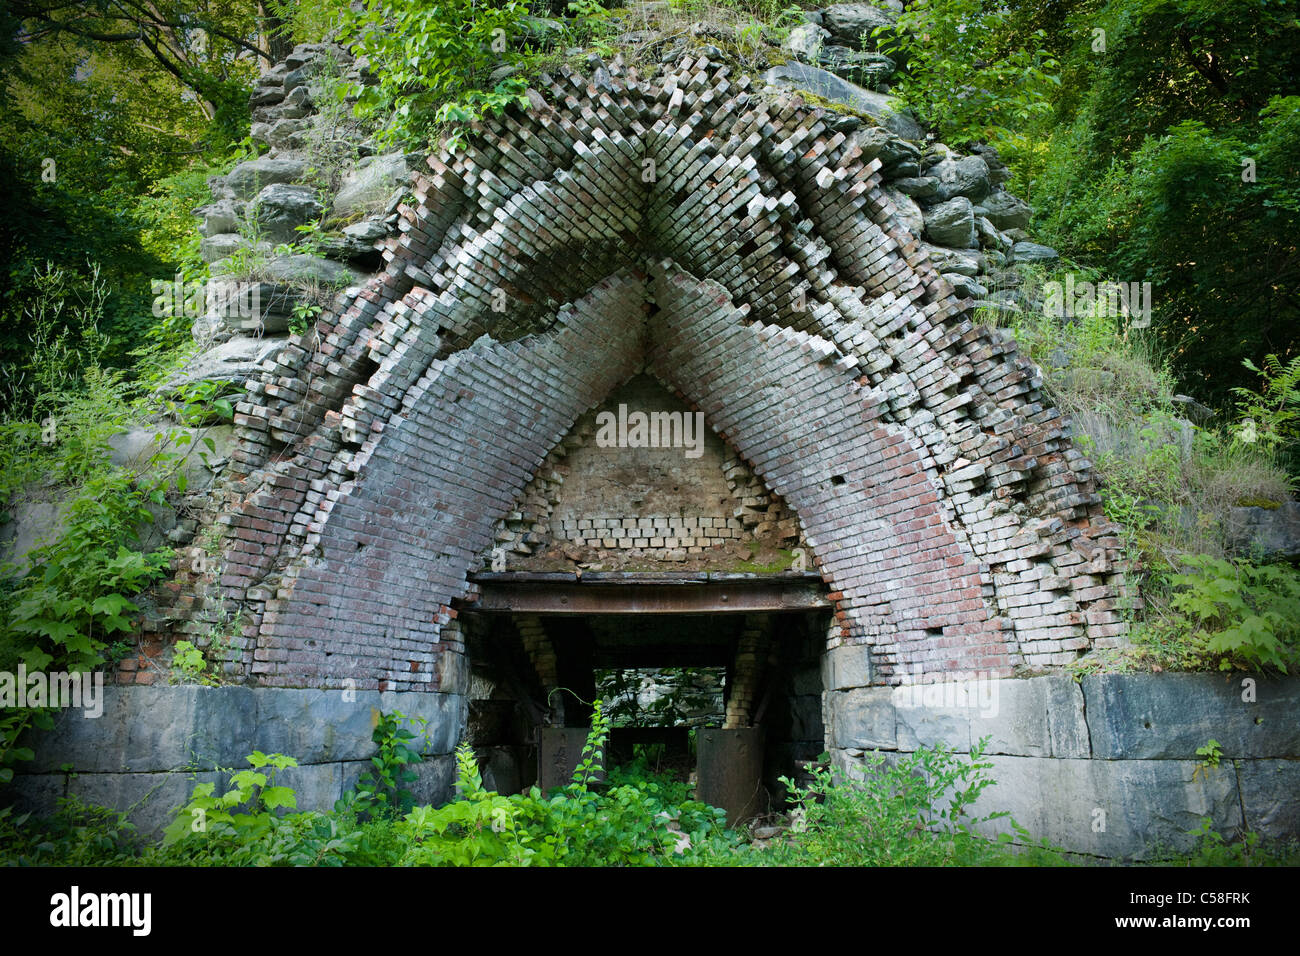 Ruins of blast furnace at Copake Iron Works, Taconic State Park, Columbia County, New York State - Stock Image